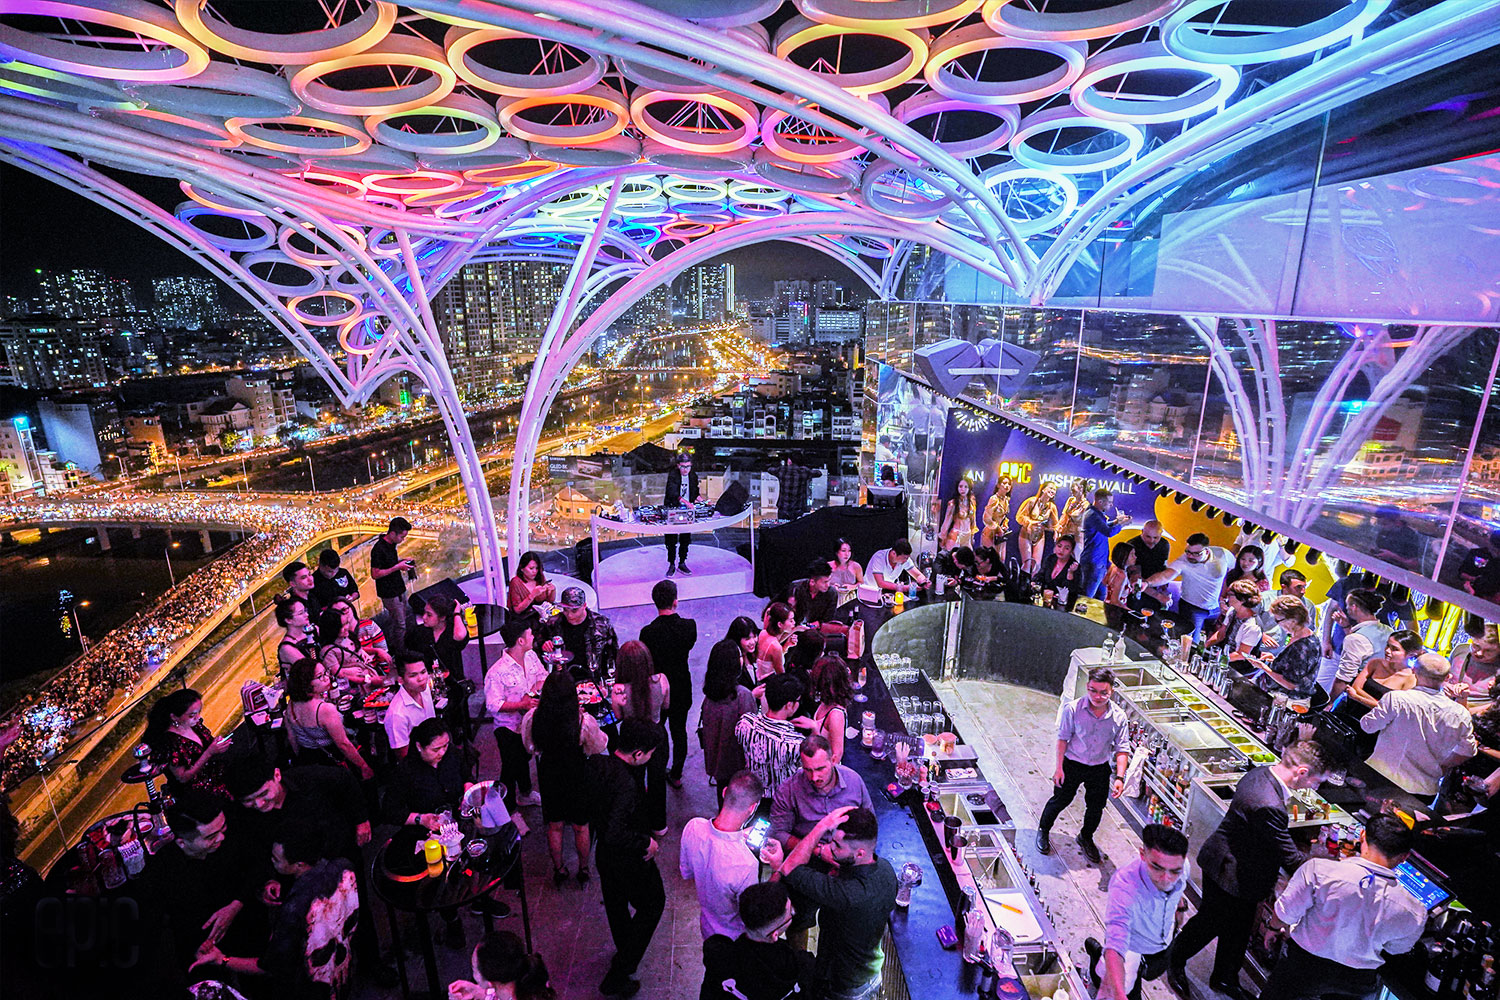 People dancing under vibrant light on epic sky lounge rooftop